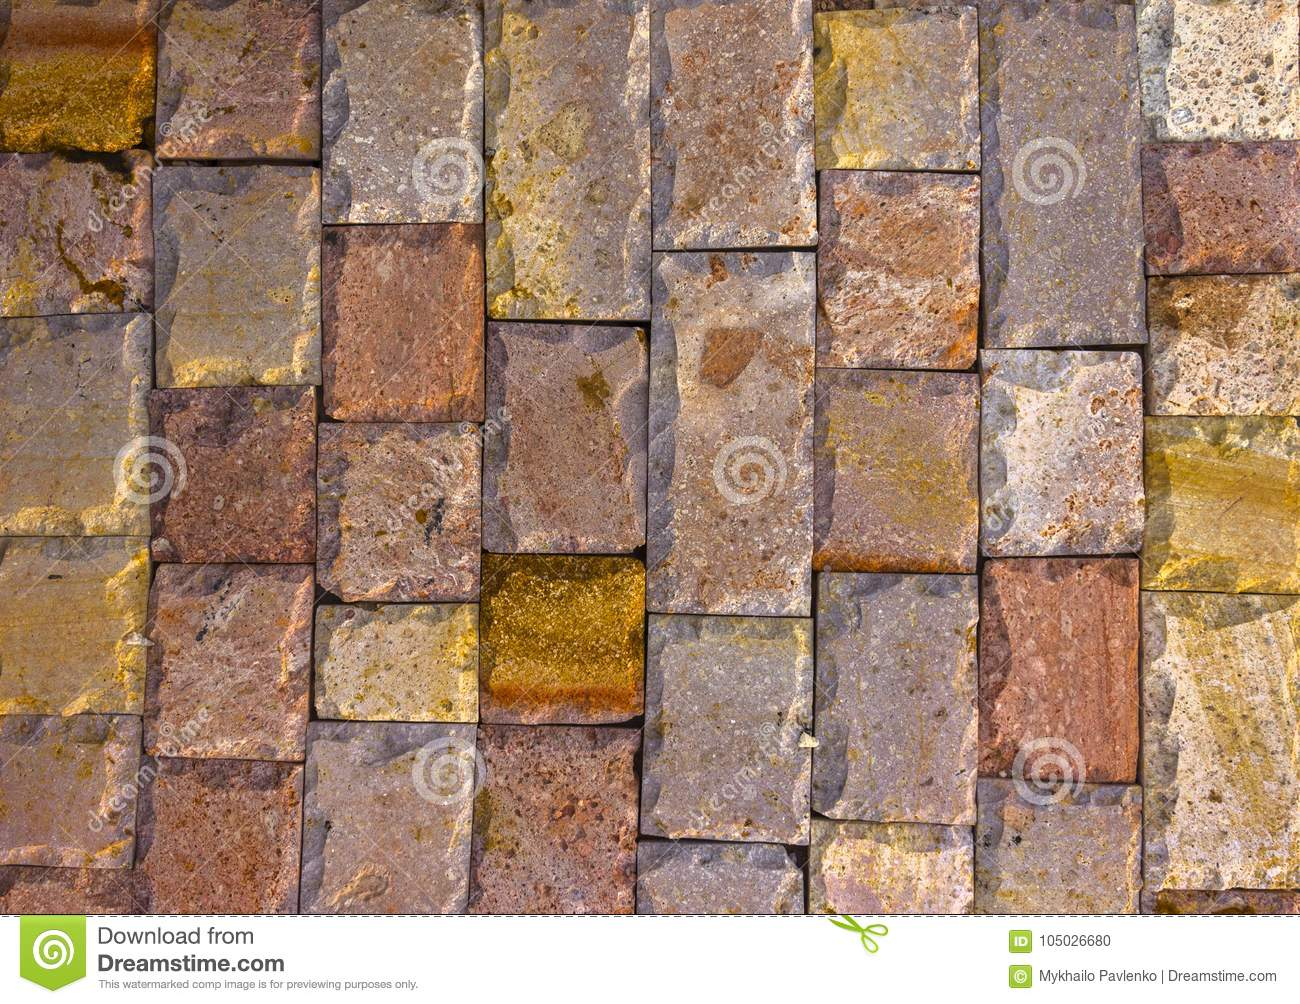 Brick tiles - a popular building material for facade cladding 100